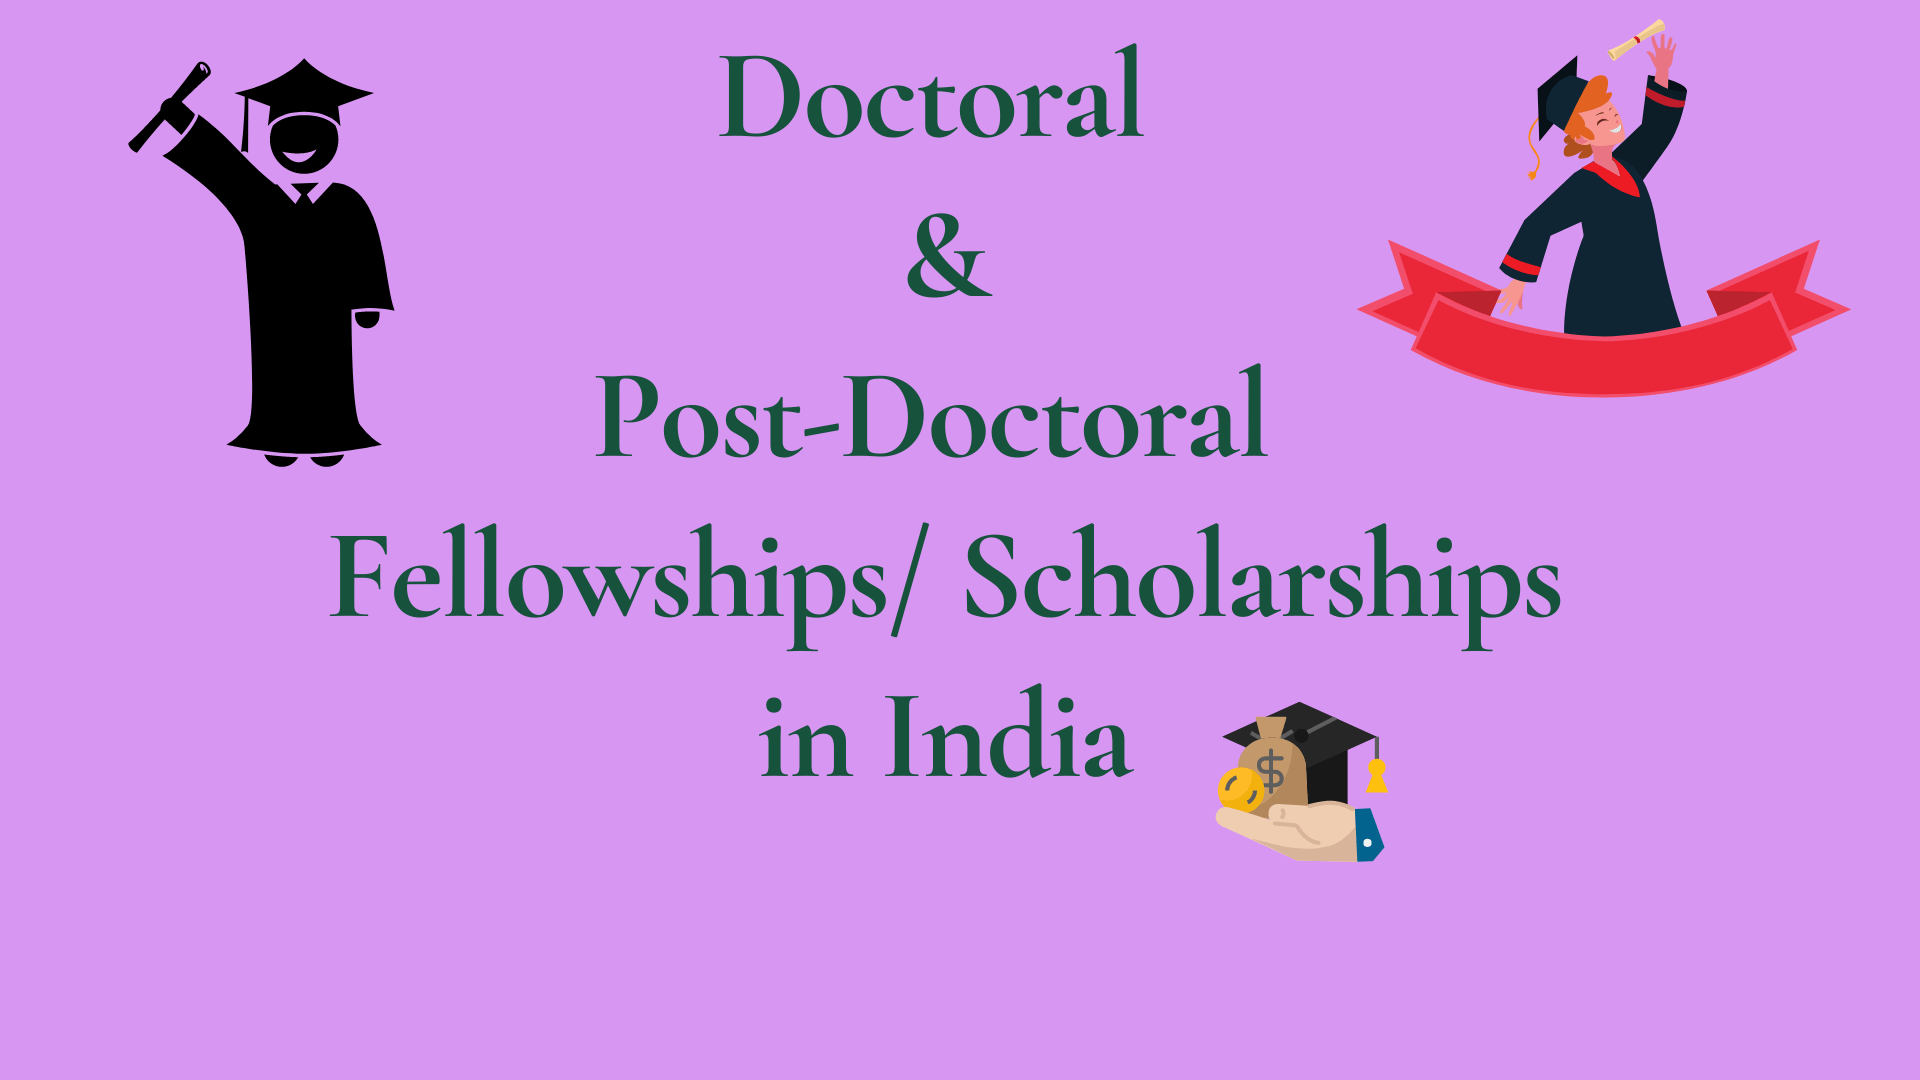 Doctoral & Post Doctoral Scholarships